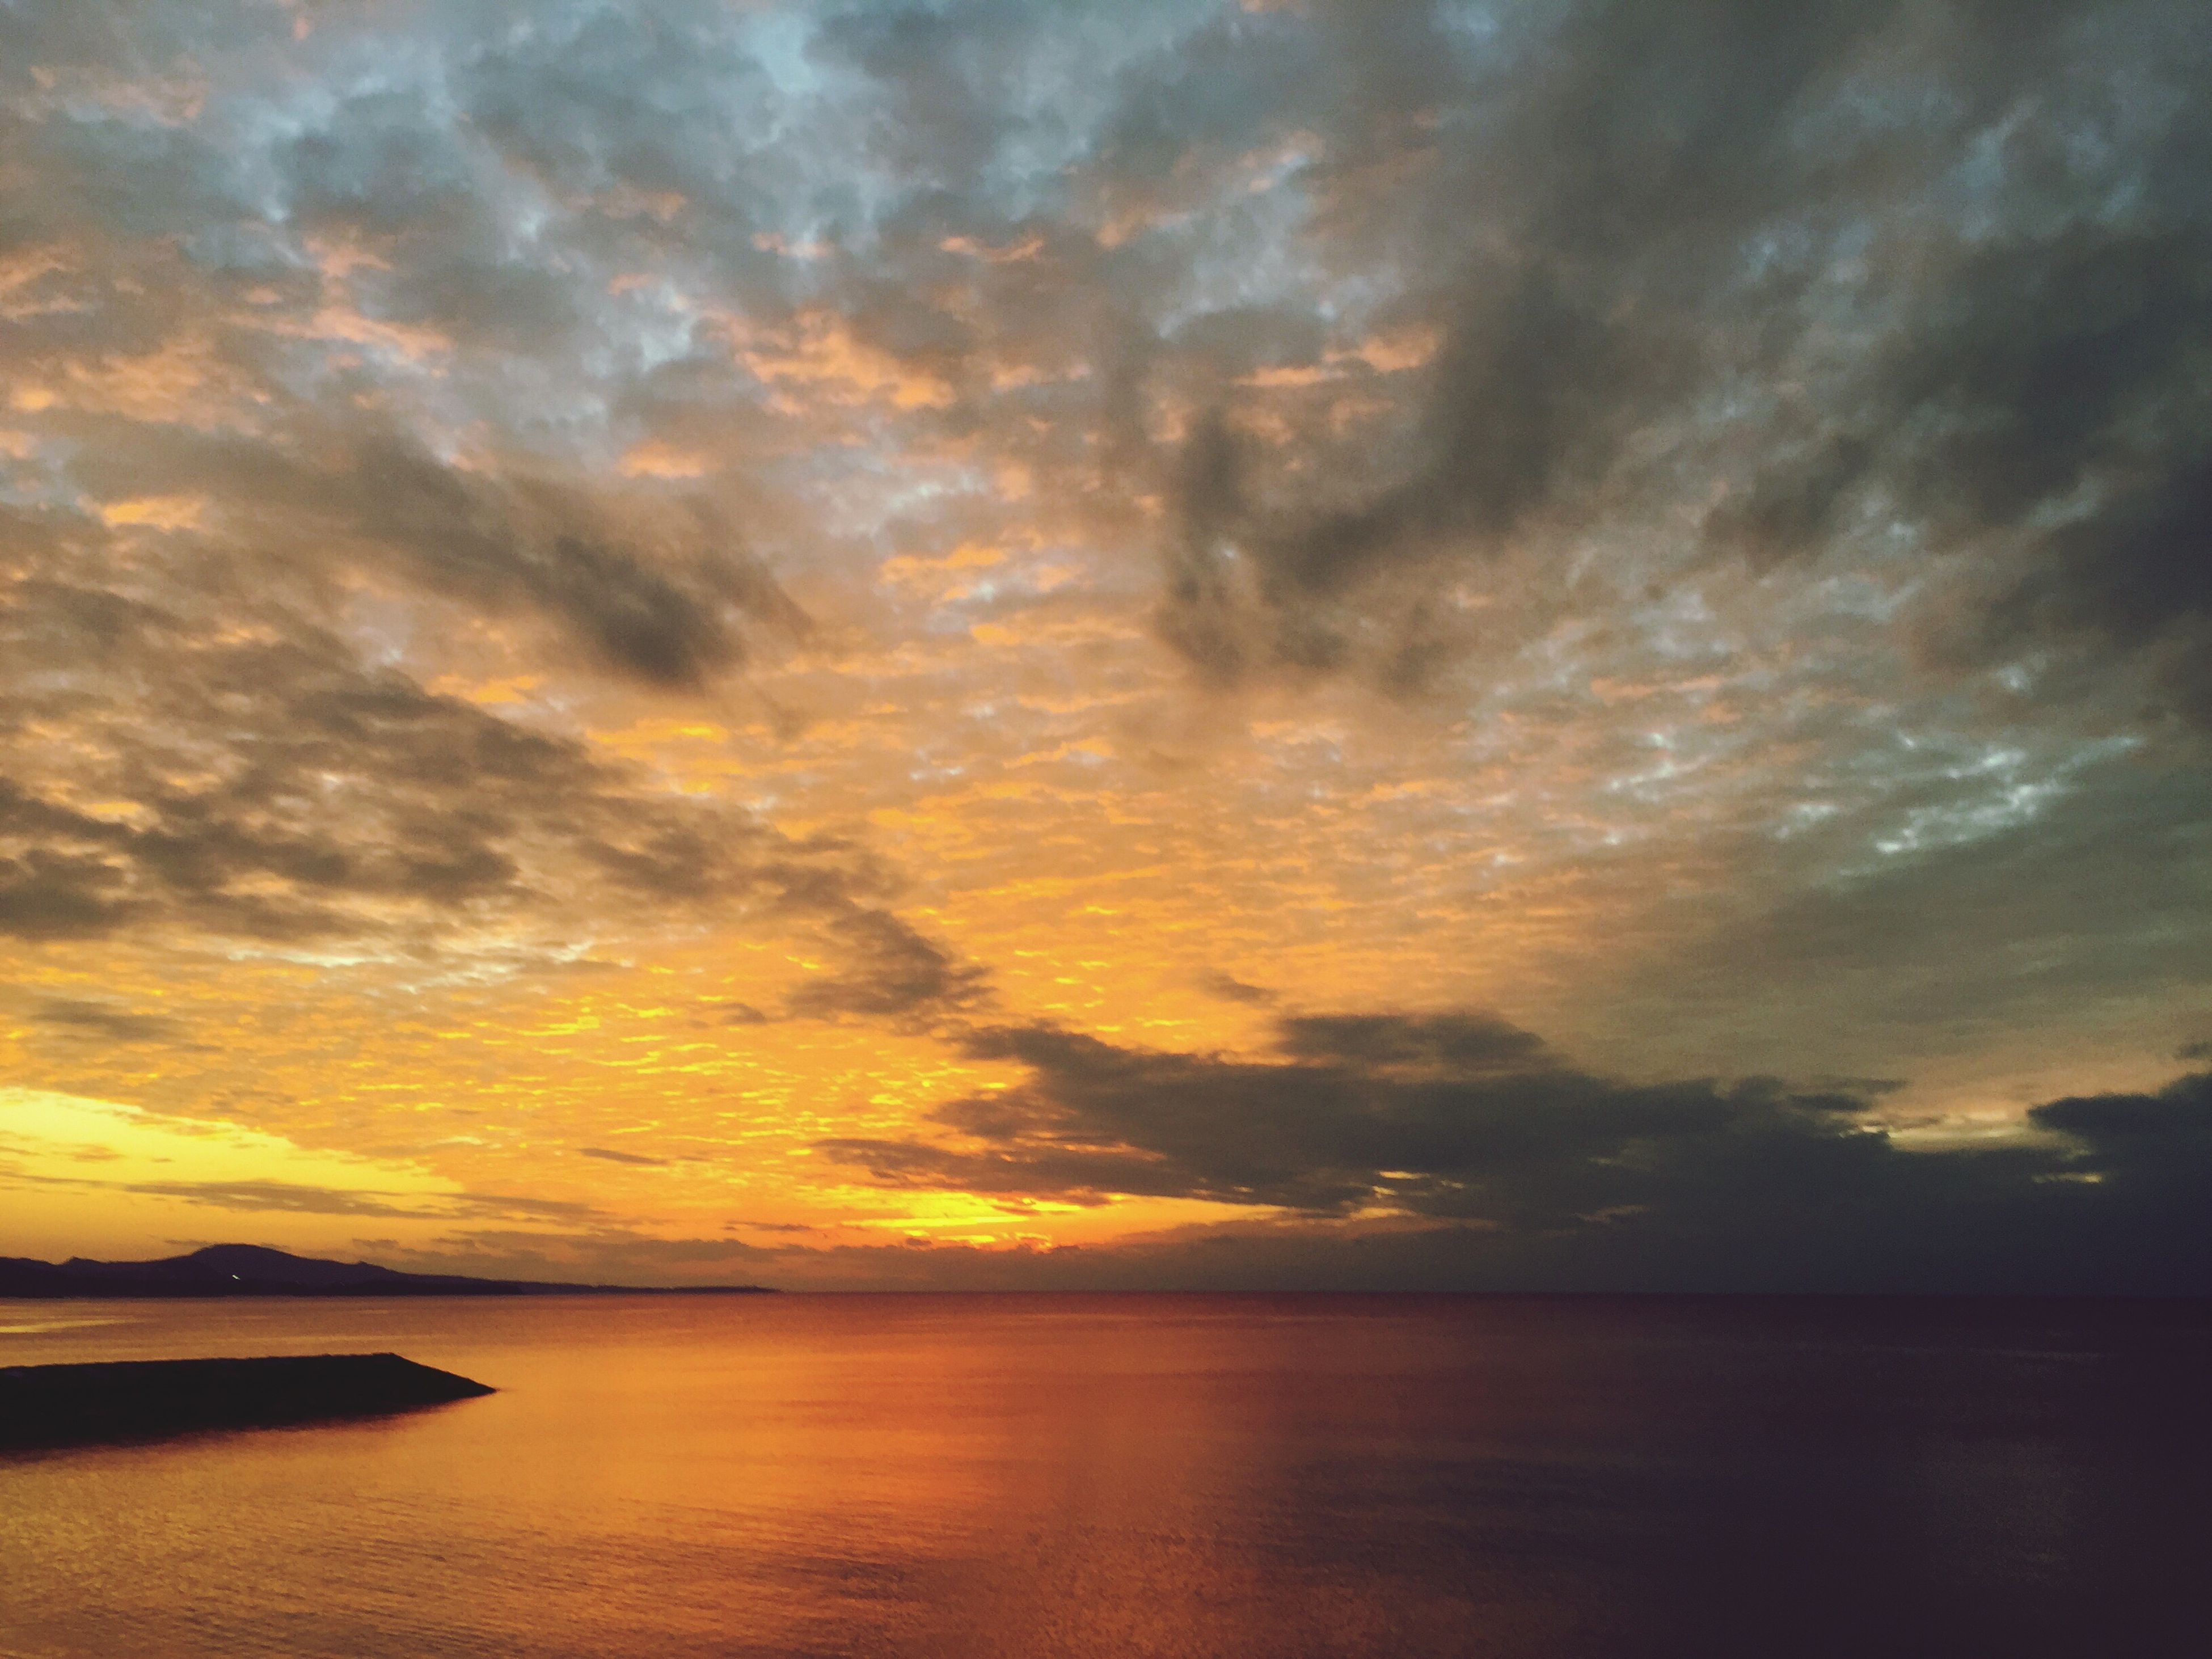 sunset, scenics, tranquil scene, water, sky, tranquility, beauty in nature, sea, cloud - sky, waterfront, idyllic, nature, orange color, horizon over water, cloud, cloudy, reflection, outdoors, dramatic sky, no people